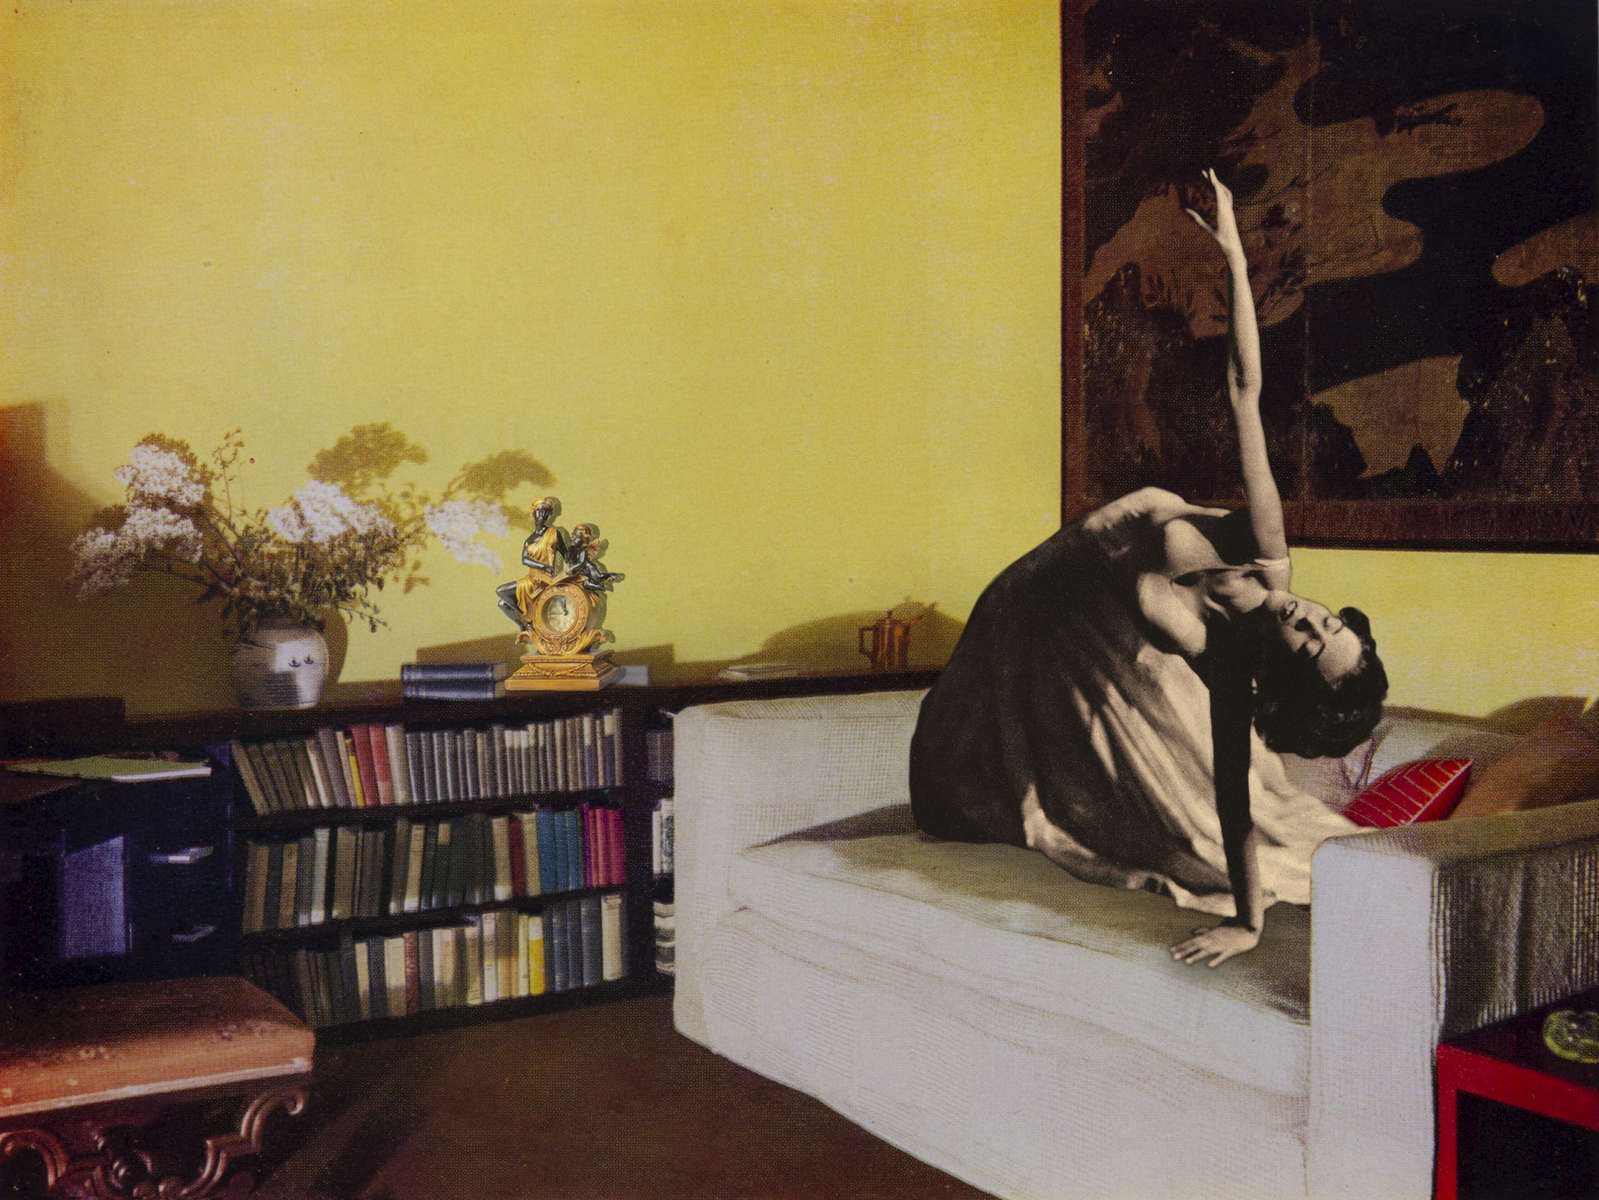 Mary Wigman poses on a larege settee in a room with Chinese yellow varnished walls. Behind Mary is an18th century Japanese screen in tones of gold and black. Design by Derek Patmore. (2018)